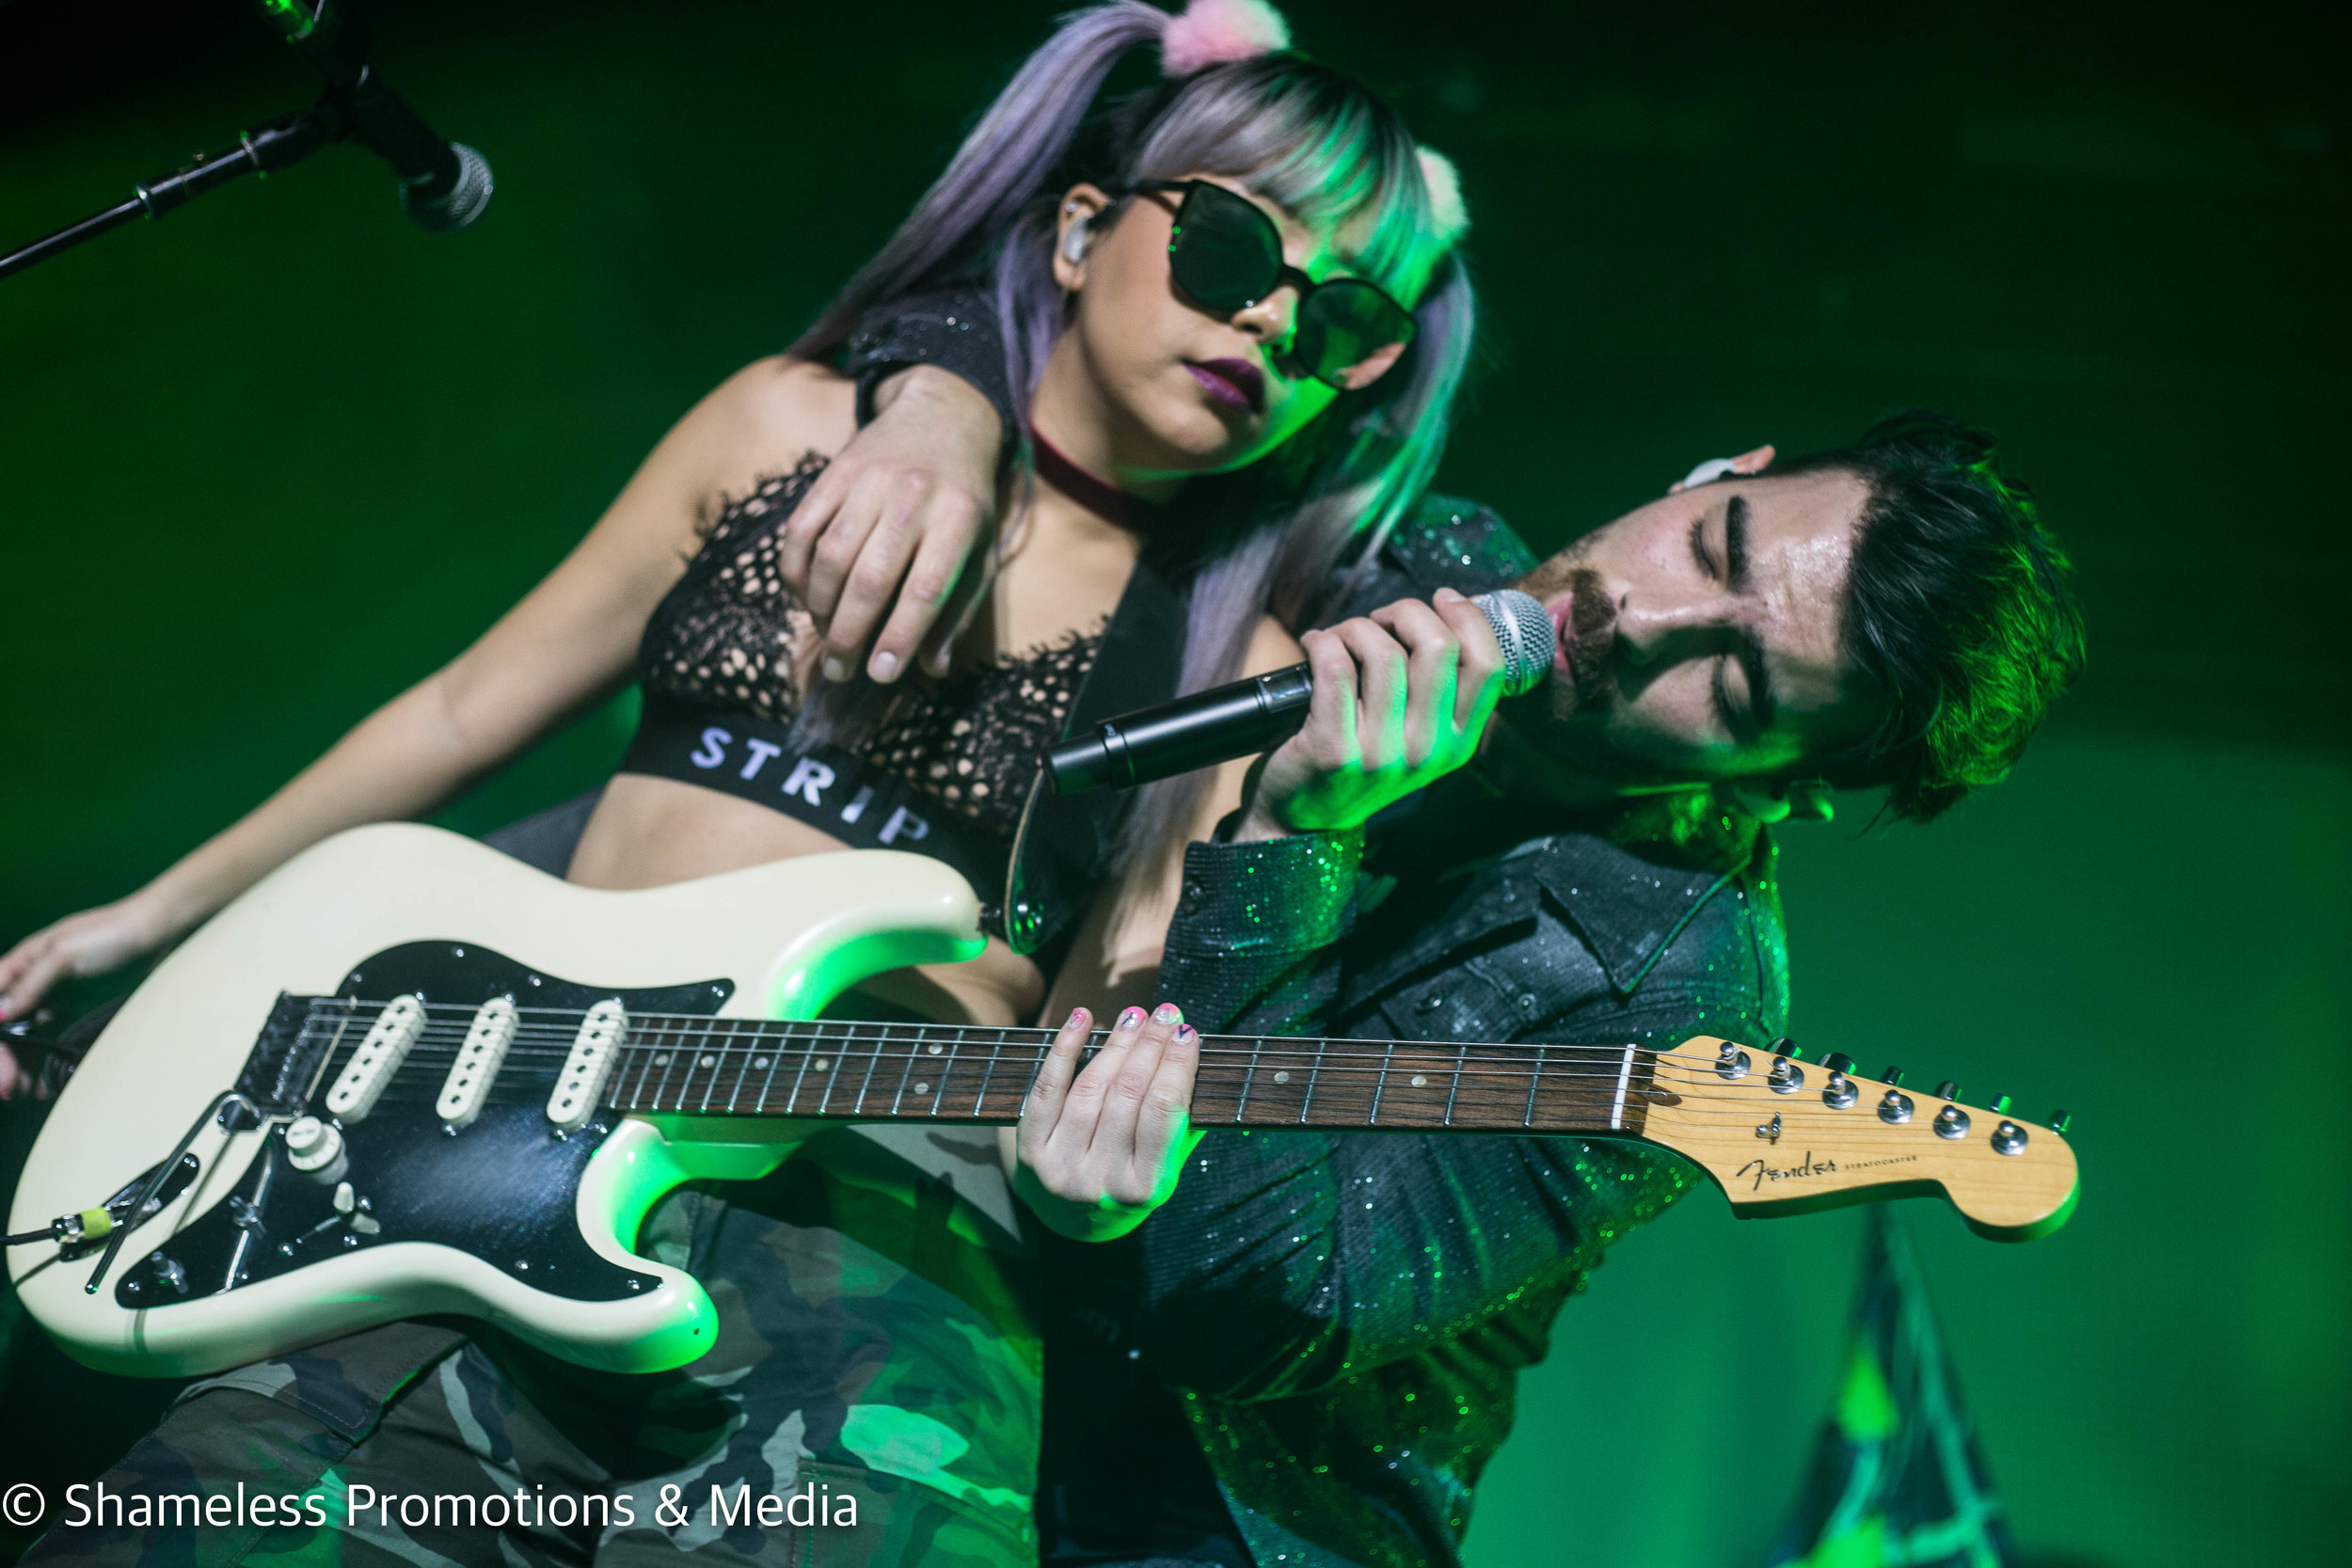 JinJoo Lee and Joe Jonas of DNCE performing at The Fillmore in San Francisco, CA. January 22, 2017. Photo: Jared Stossel